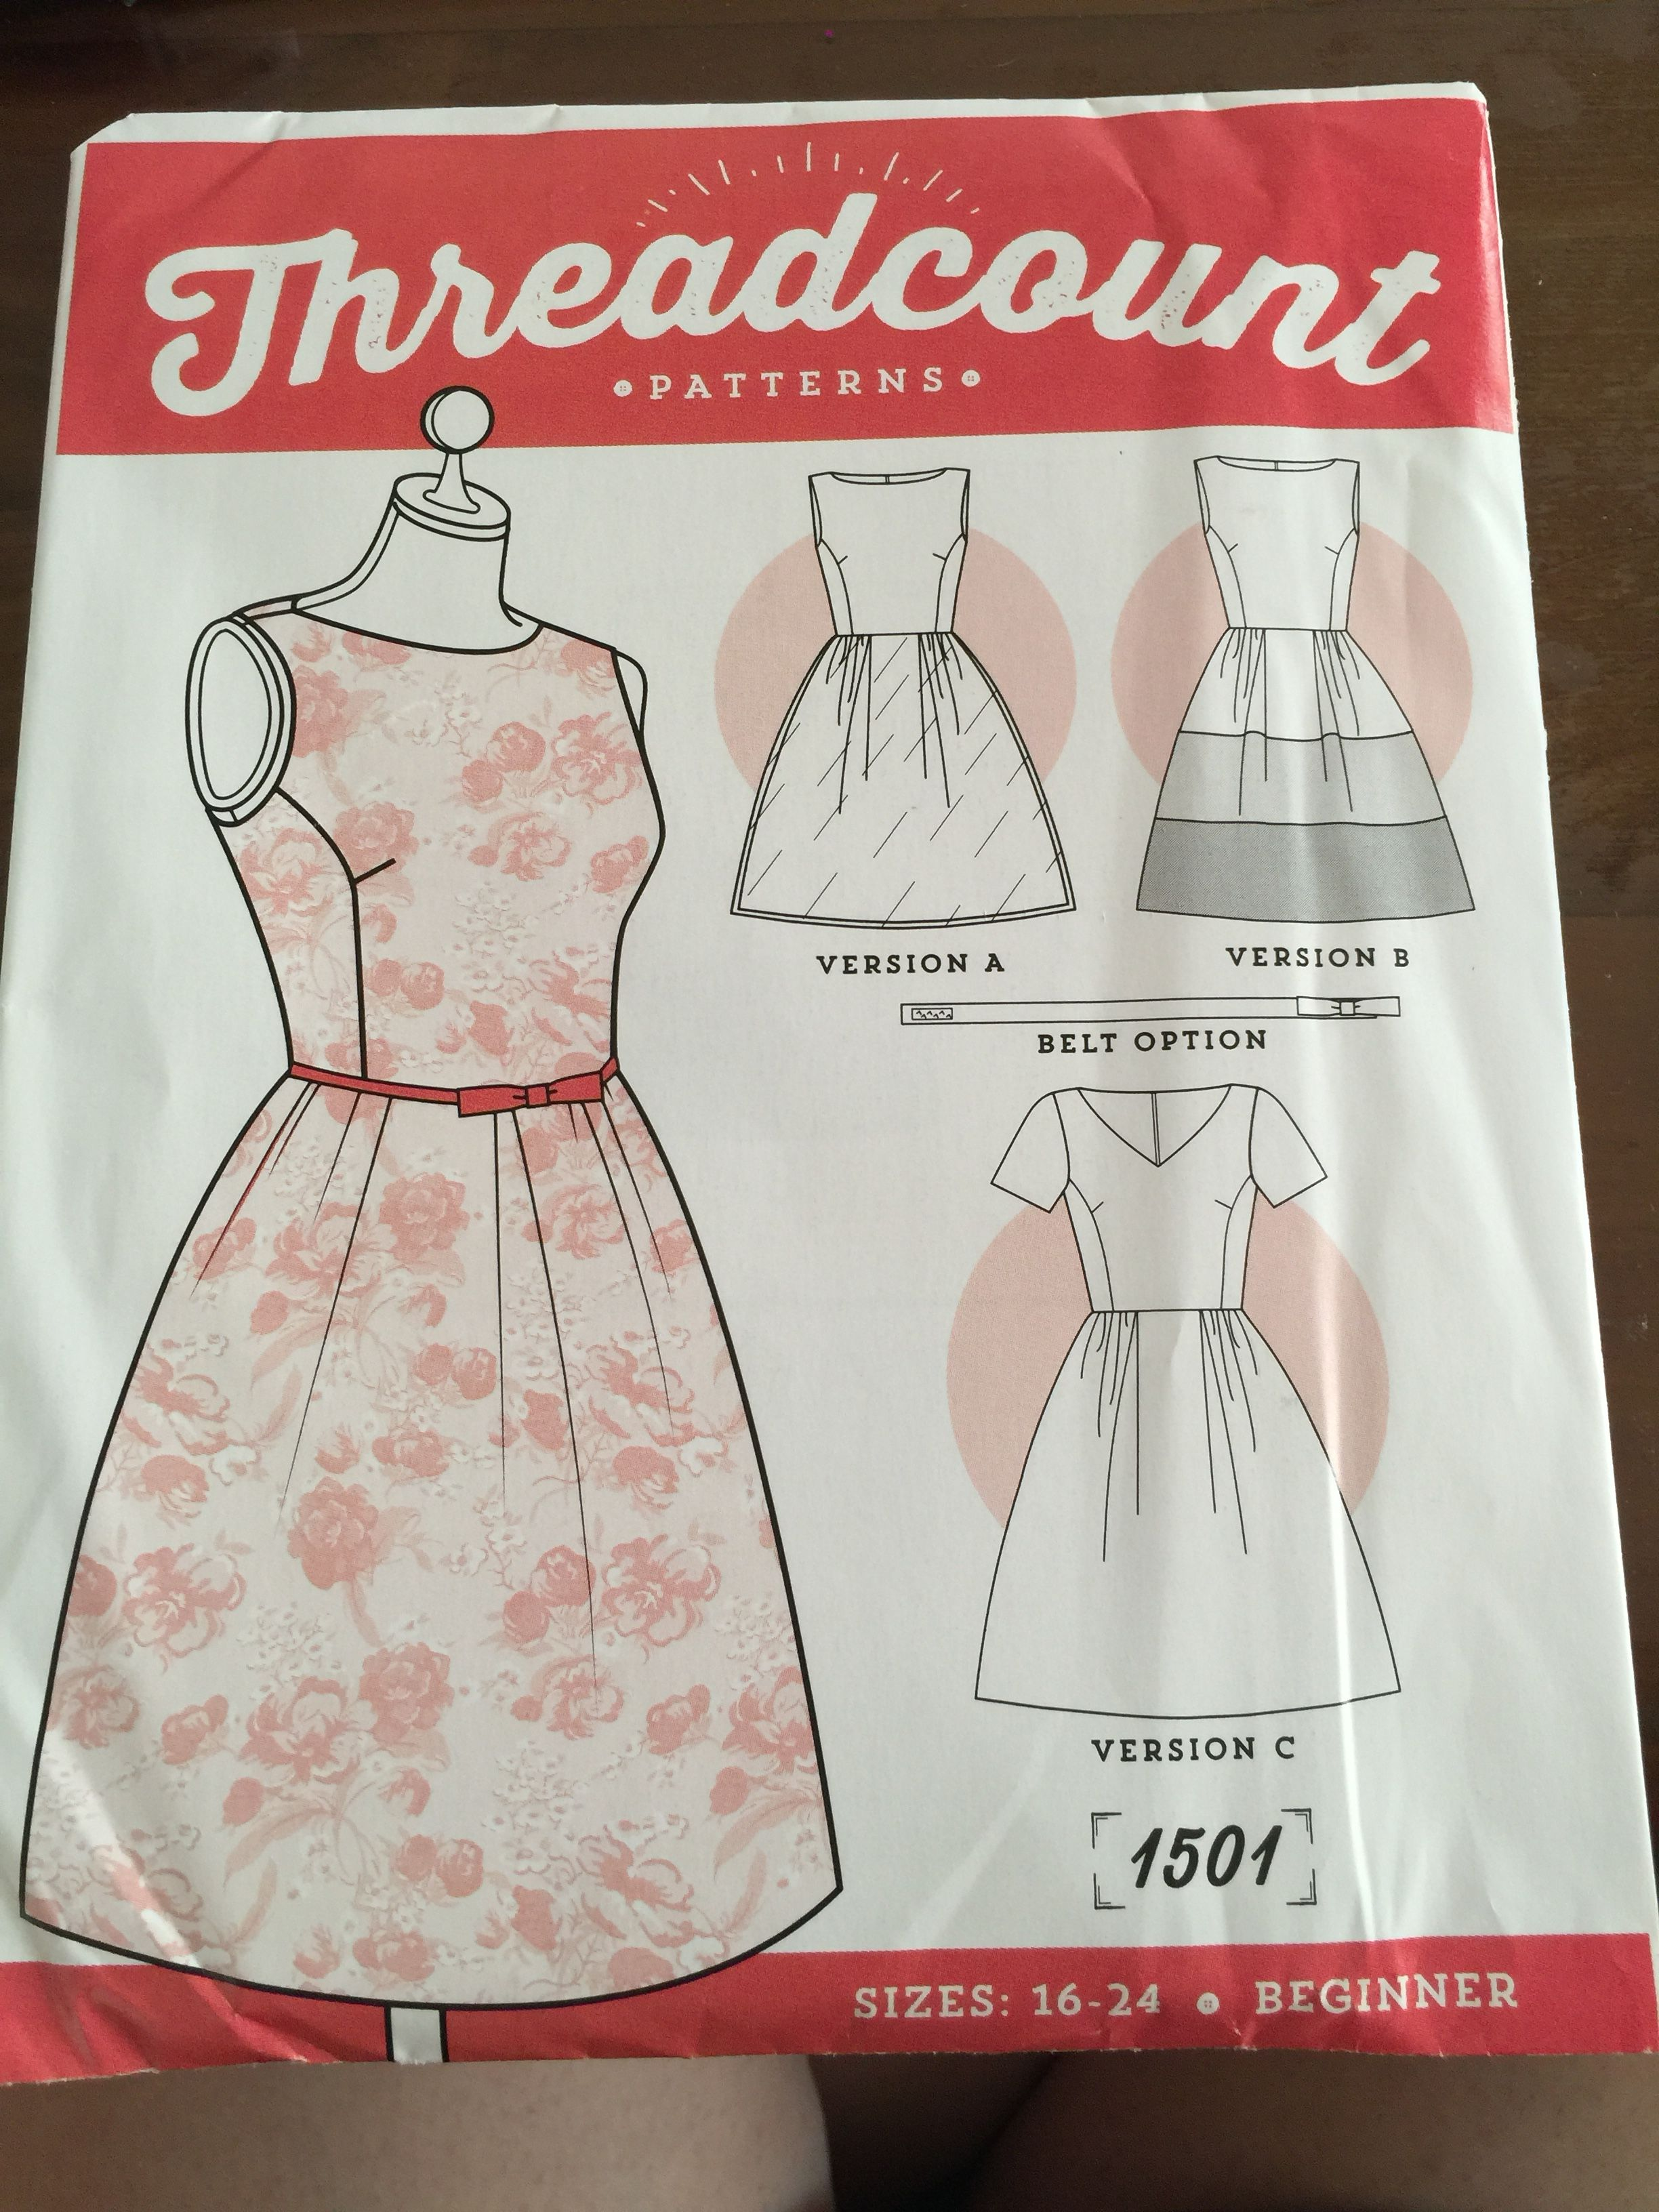 Threadcount 1501 16-24 beginner dress | Sewing | Pinterest | Sewing ...